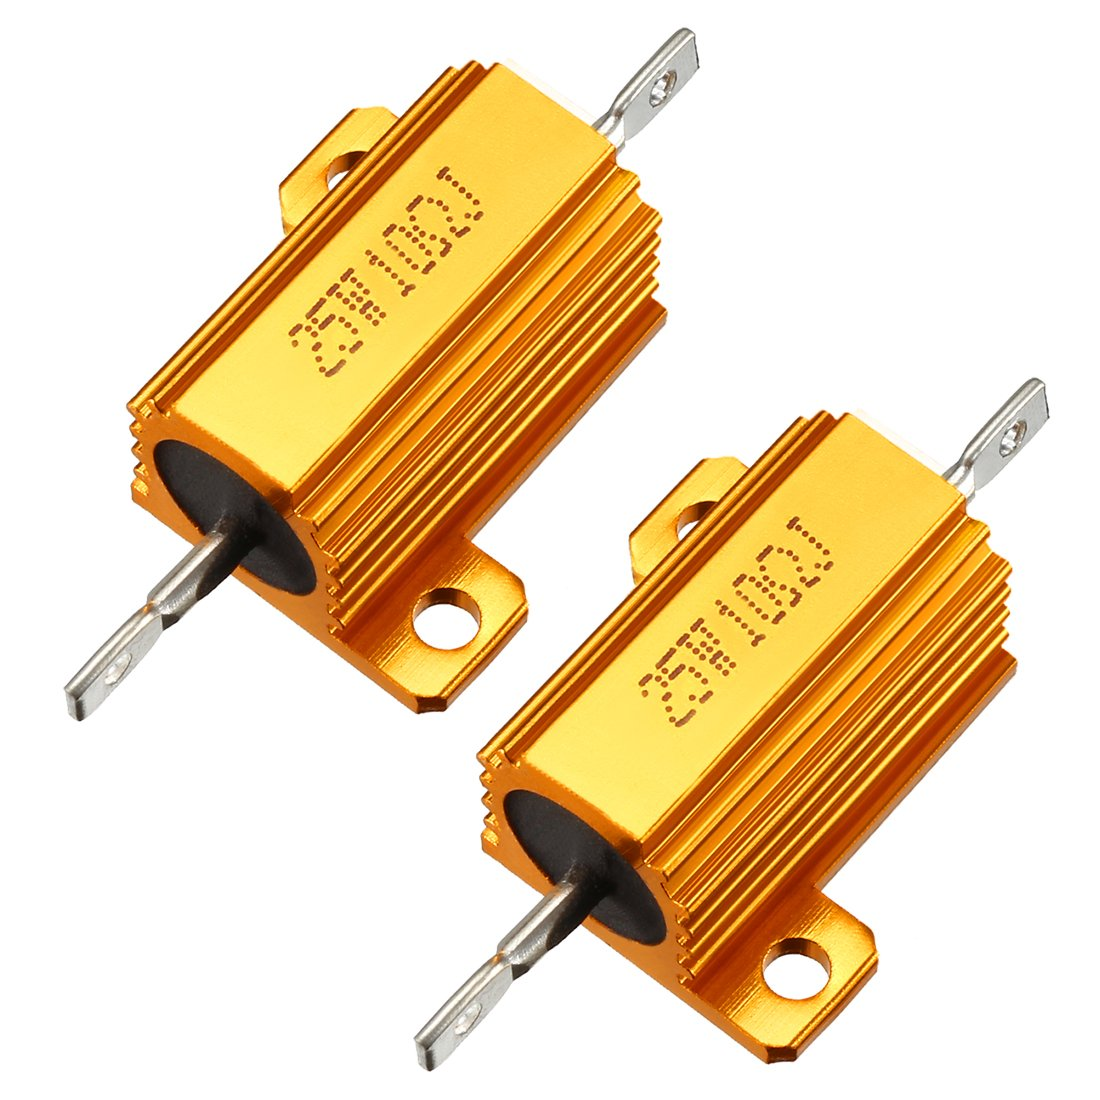 uxcell 25W 15 Ohm 5/% Aluminum Housing Resistor Screw Tap Chassis Mounted Aluminum Case Wirewound Resistor Load Resistors Gold Tone 2 pcs